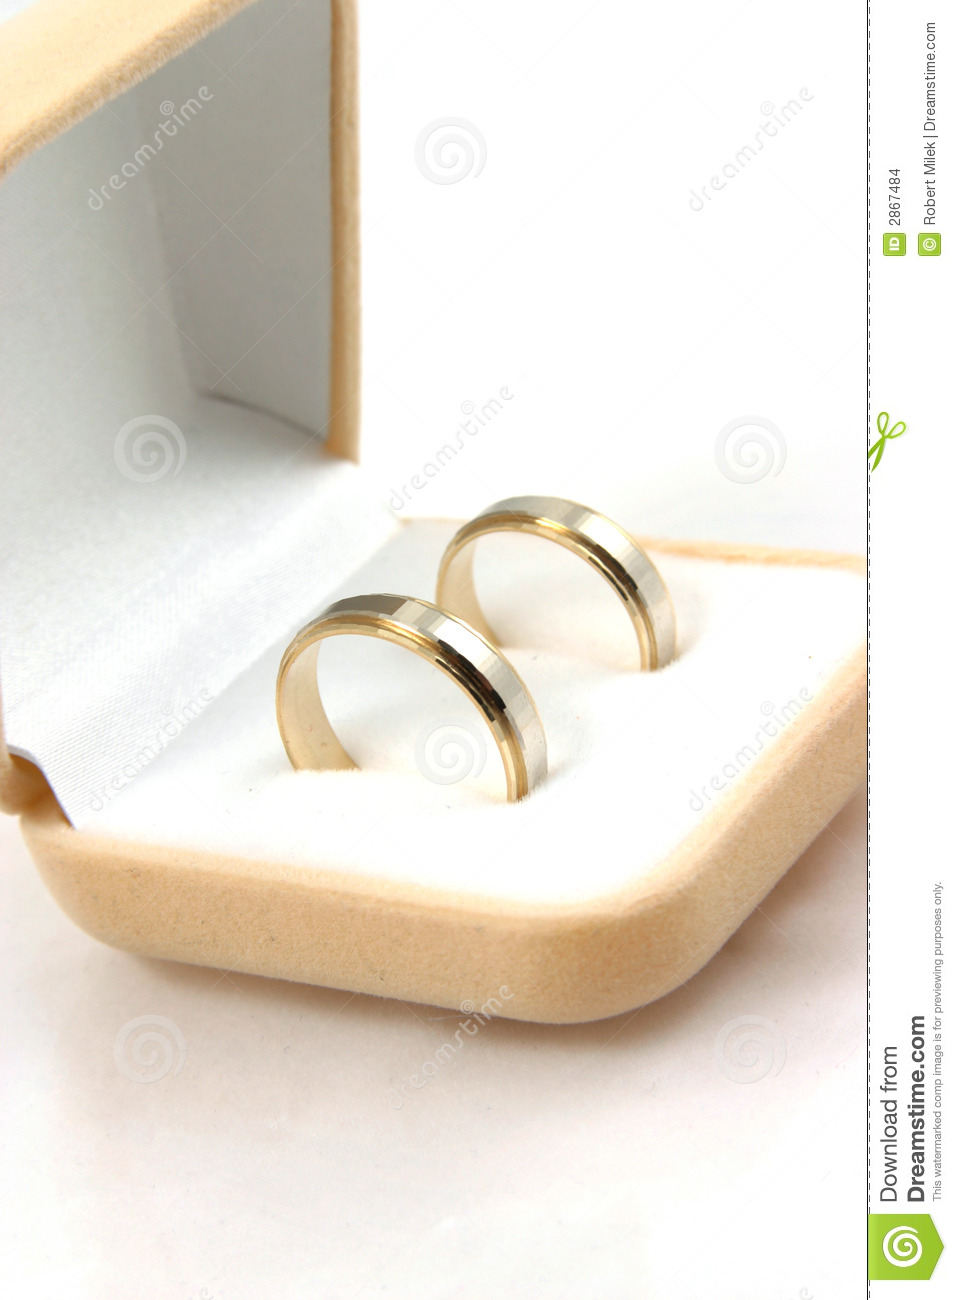 3cb29b3404609 Wedding rings stock photo. Image of render